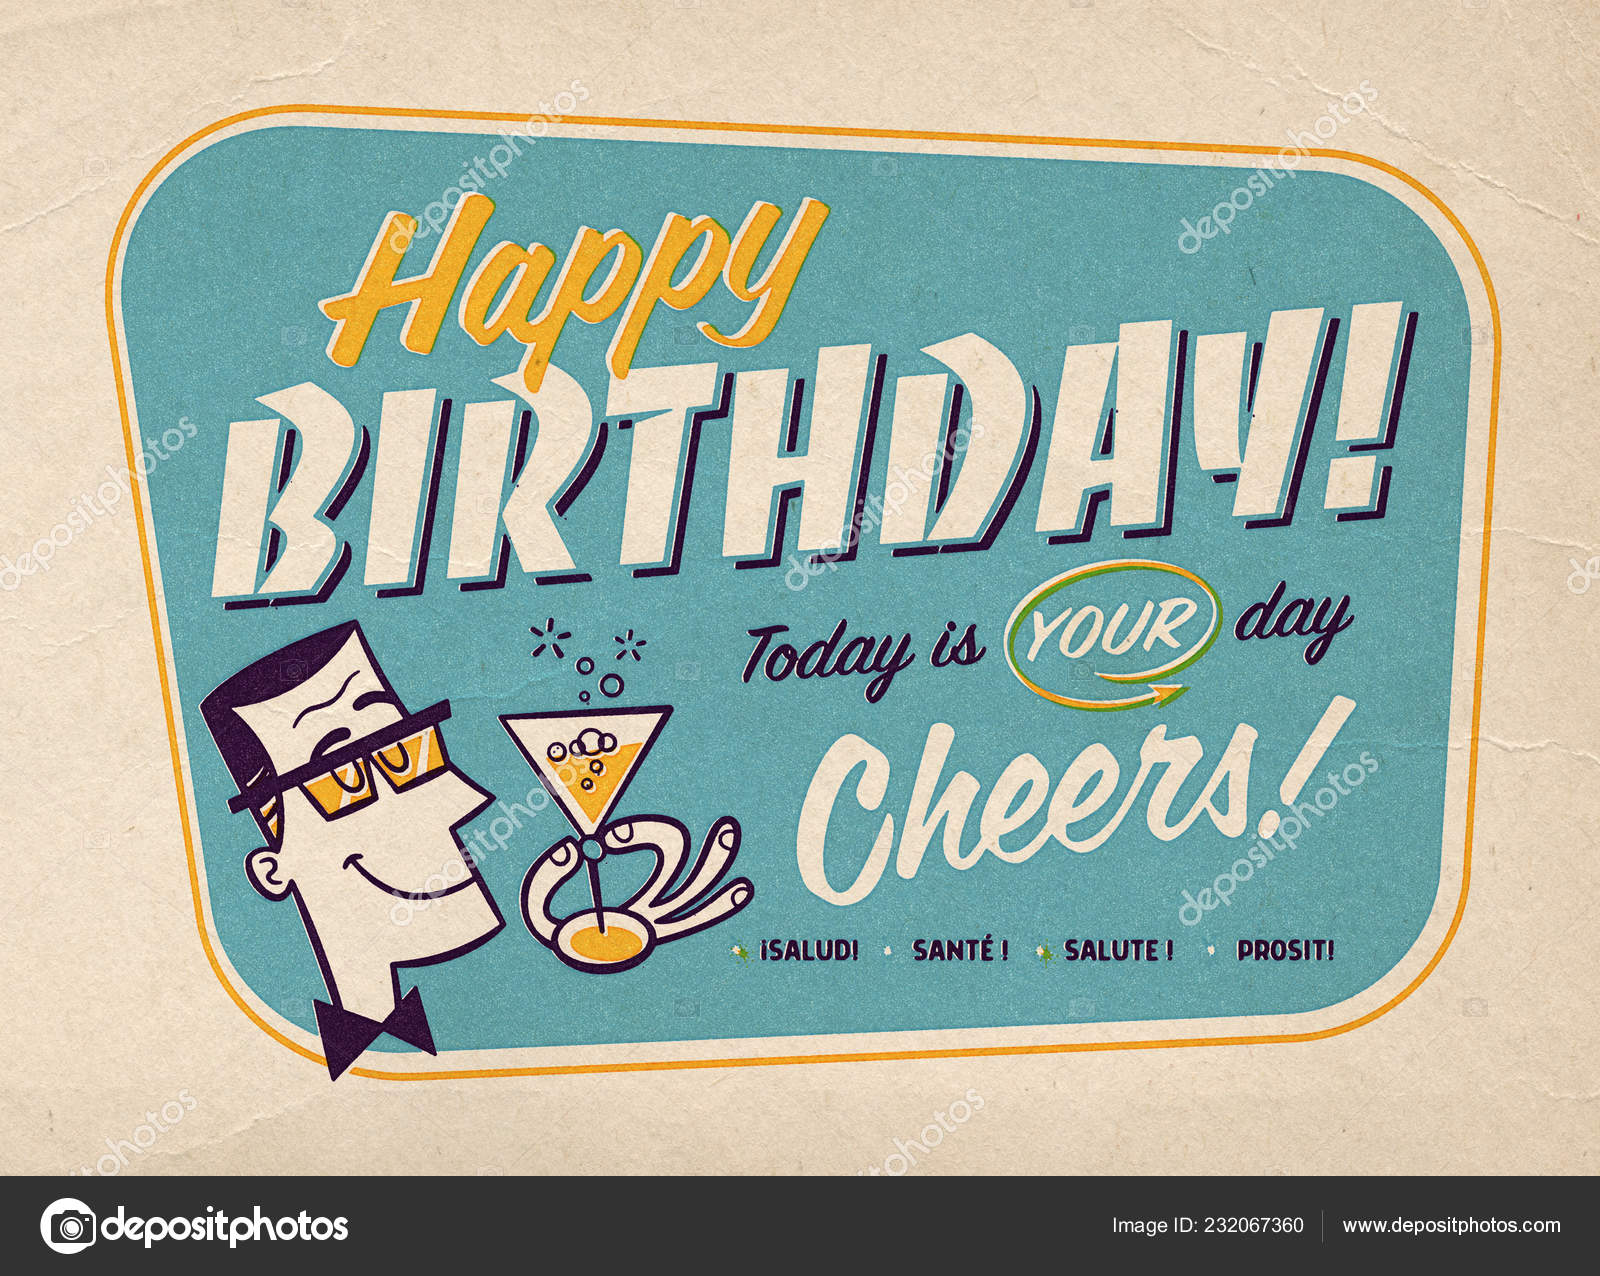 Vintage Style Happy Birthday Card Illustration with Retro Prepress Effects  - Cheers! 7